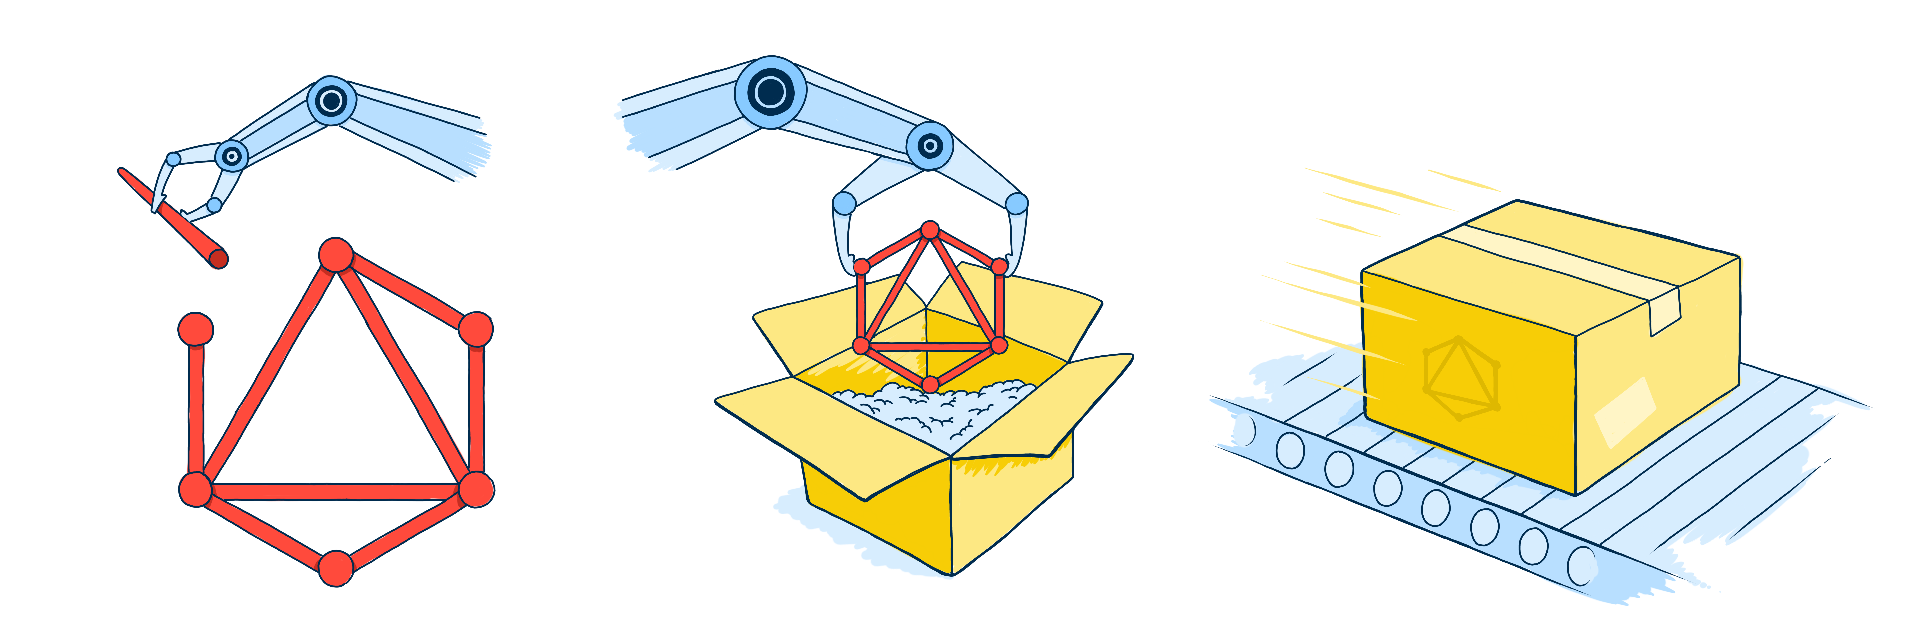 Illustration of a GraphQL symbol being assembled, packaged into a box, and then shipped out on a conveyor belt